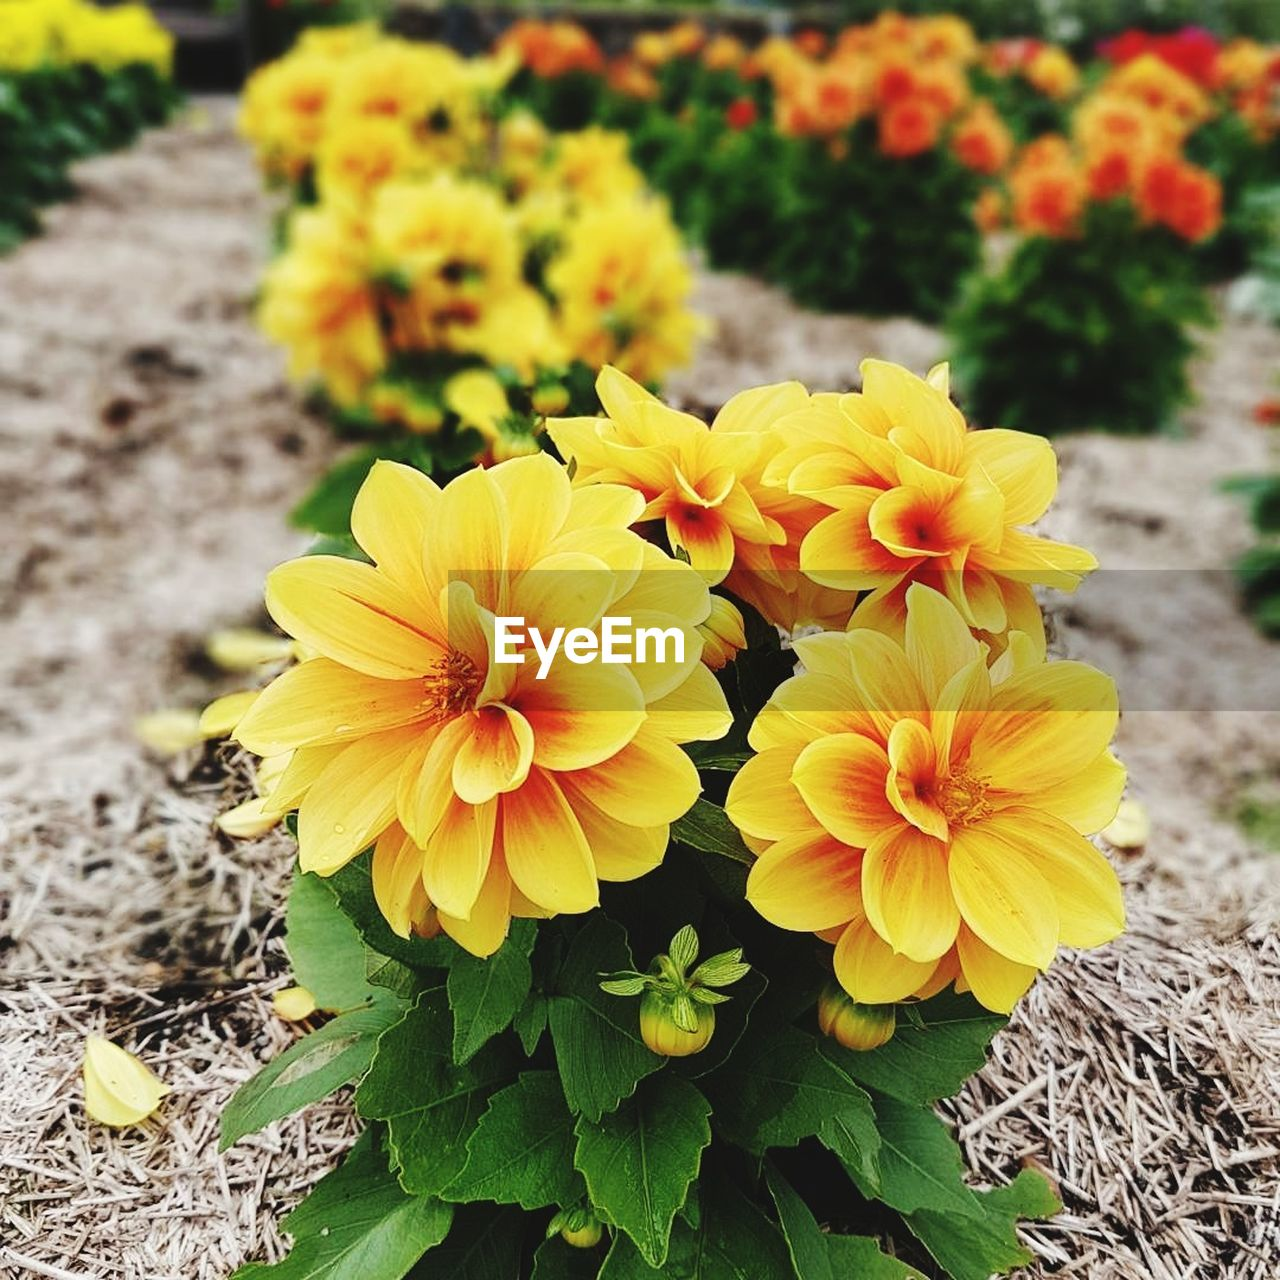 flower, petal, flower head, yellow, fragility, freshness, growth, plant, beauty in nature, nature, outdoors, day, blooming, no people, high angle view, close-up, field, leaf